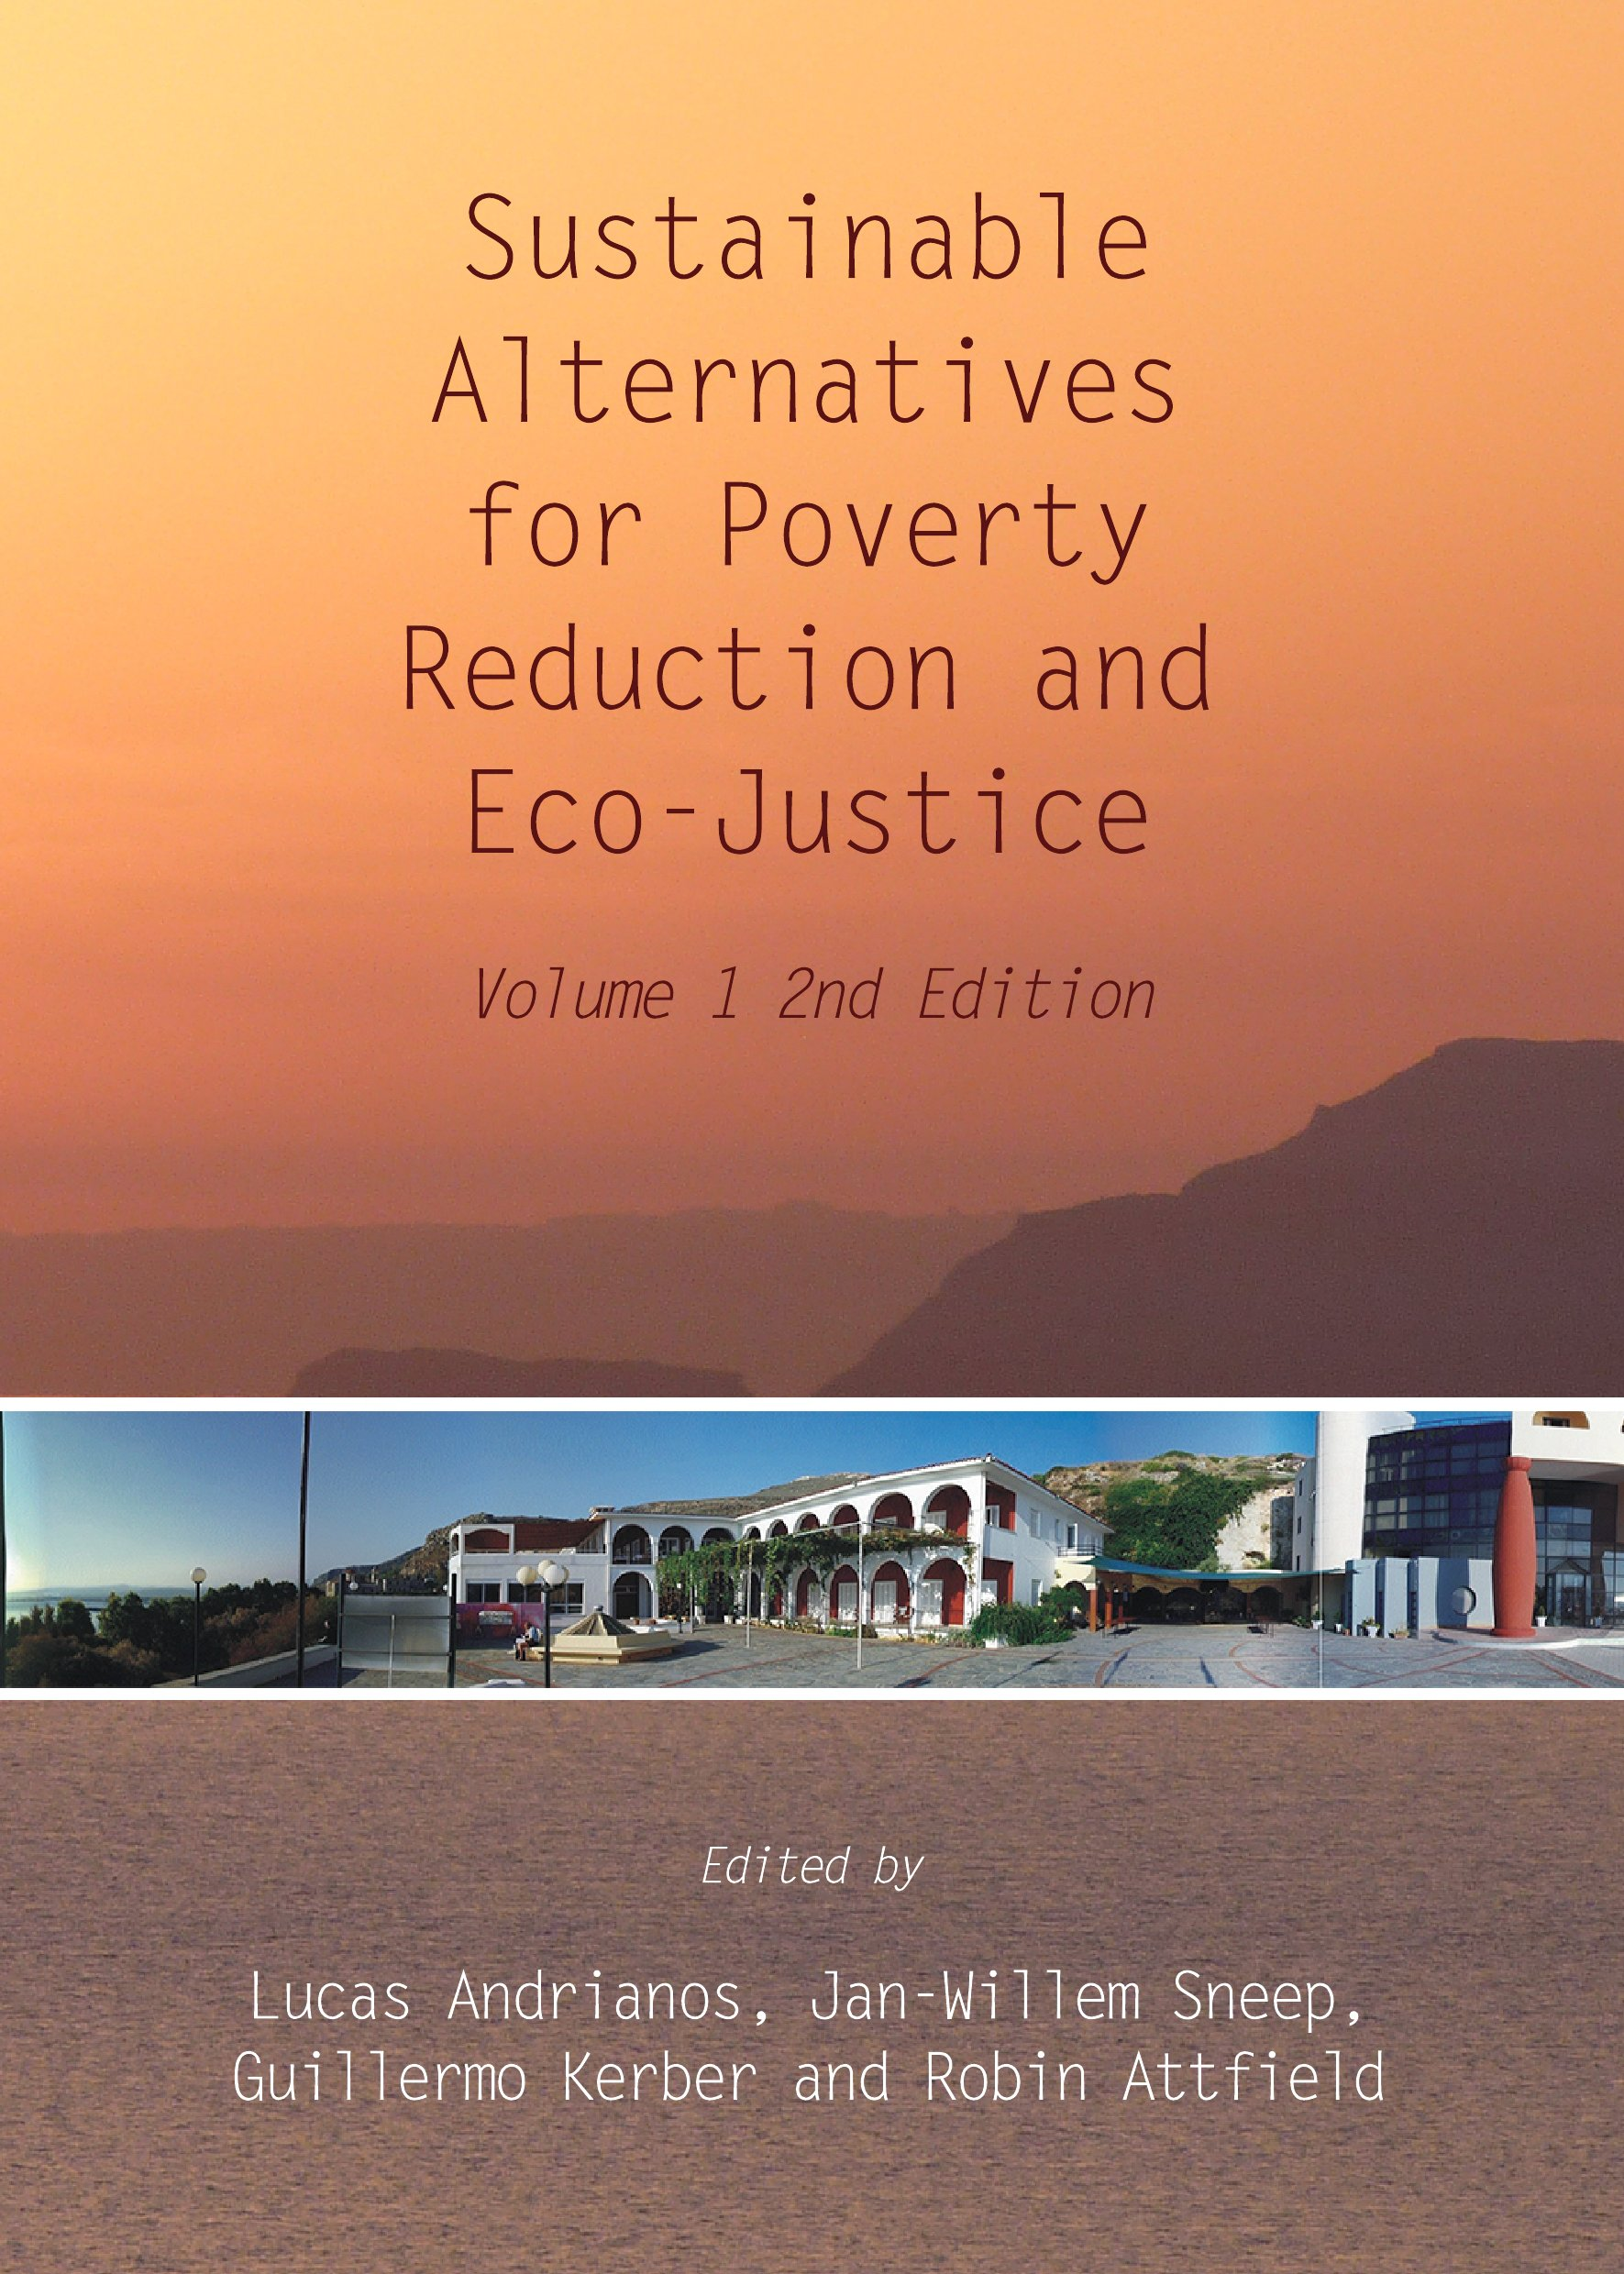 Sustainable Alternatives for Poverty Reduction and Eco-Justice: Volume 1 2nd Edition